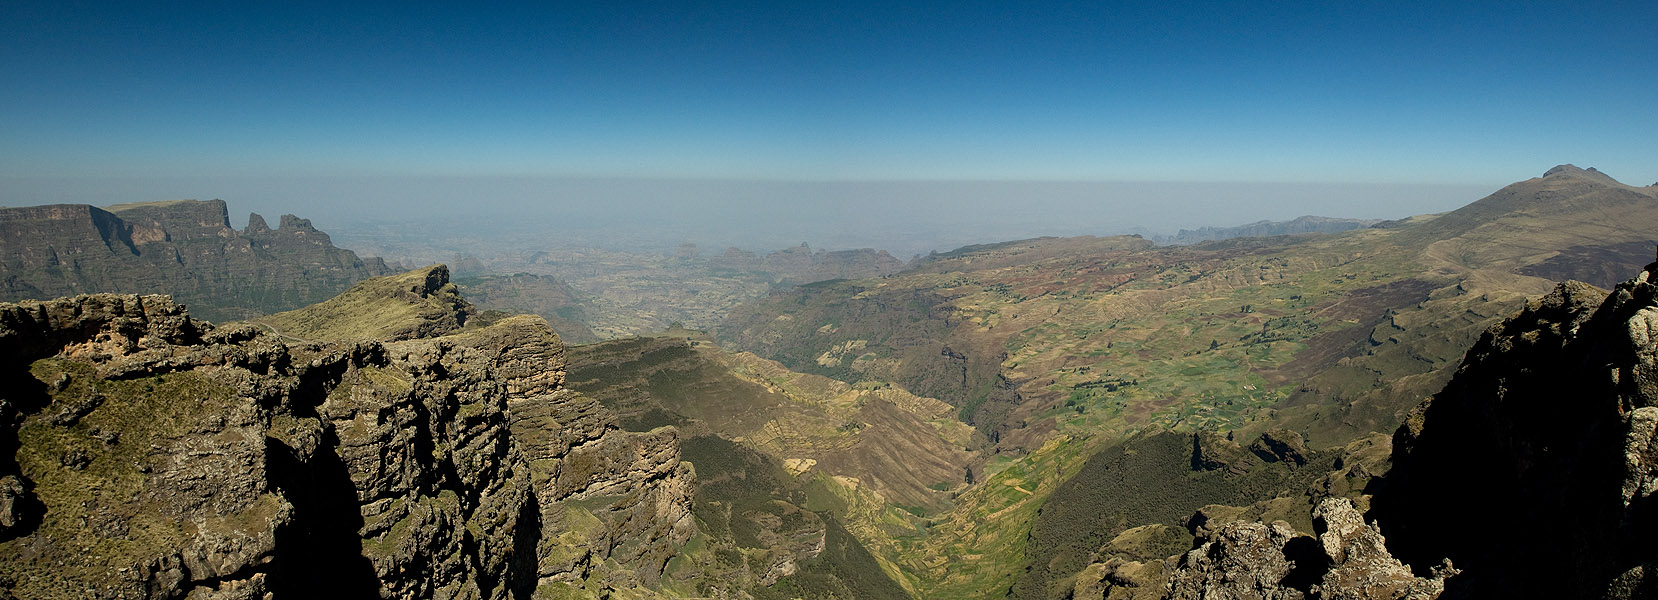 This is a stitched panorama of five images, looking NNW along the escarpment from the viewpoint at Chennek in the Simien Mountains National Park, Ethiopia. The cliffs fall away from this point by over 1000m